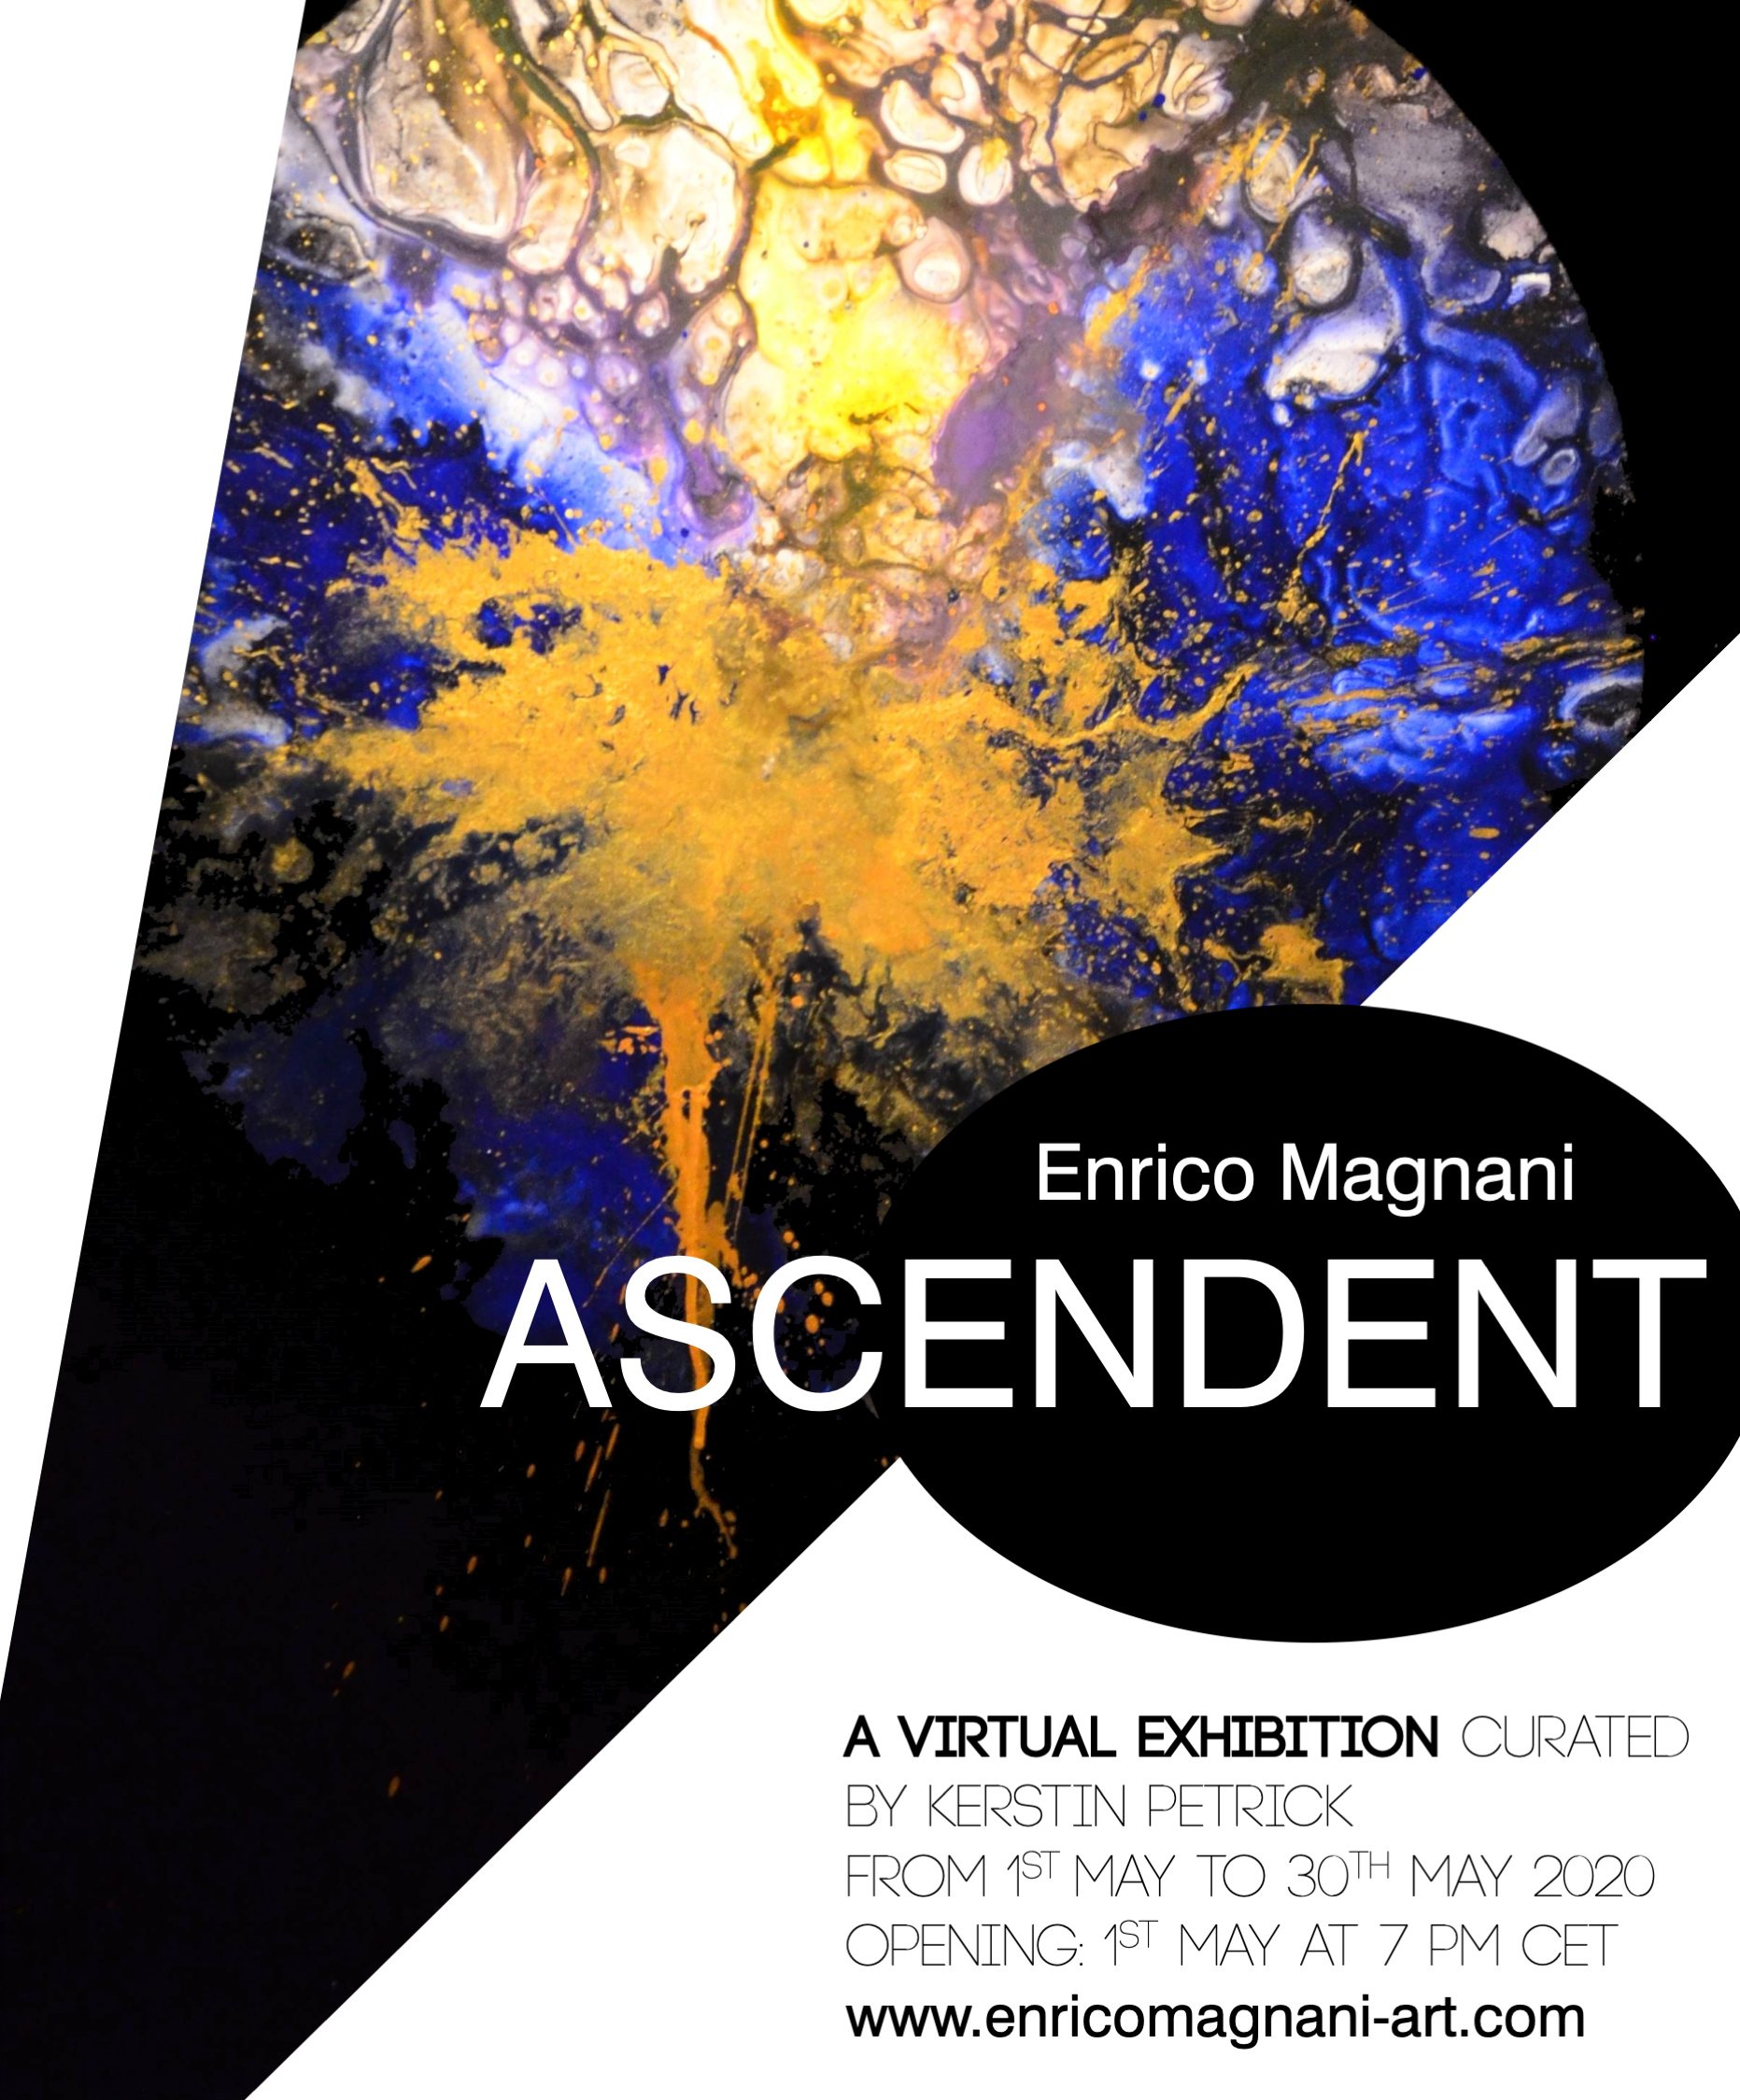 enrico, magnani, art, mostra, virtuale, ascendent, virtual, show, exhibition